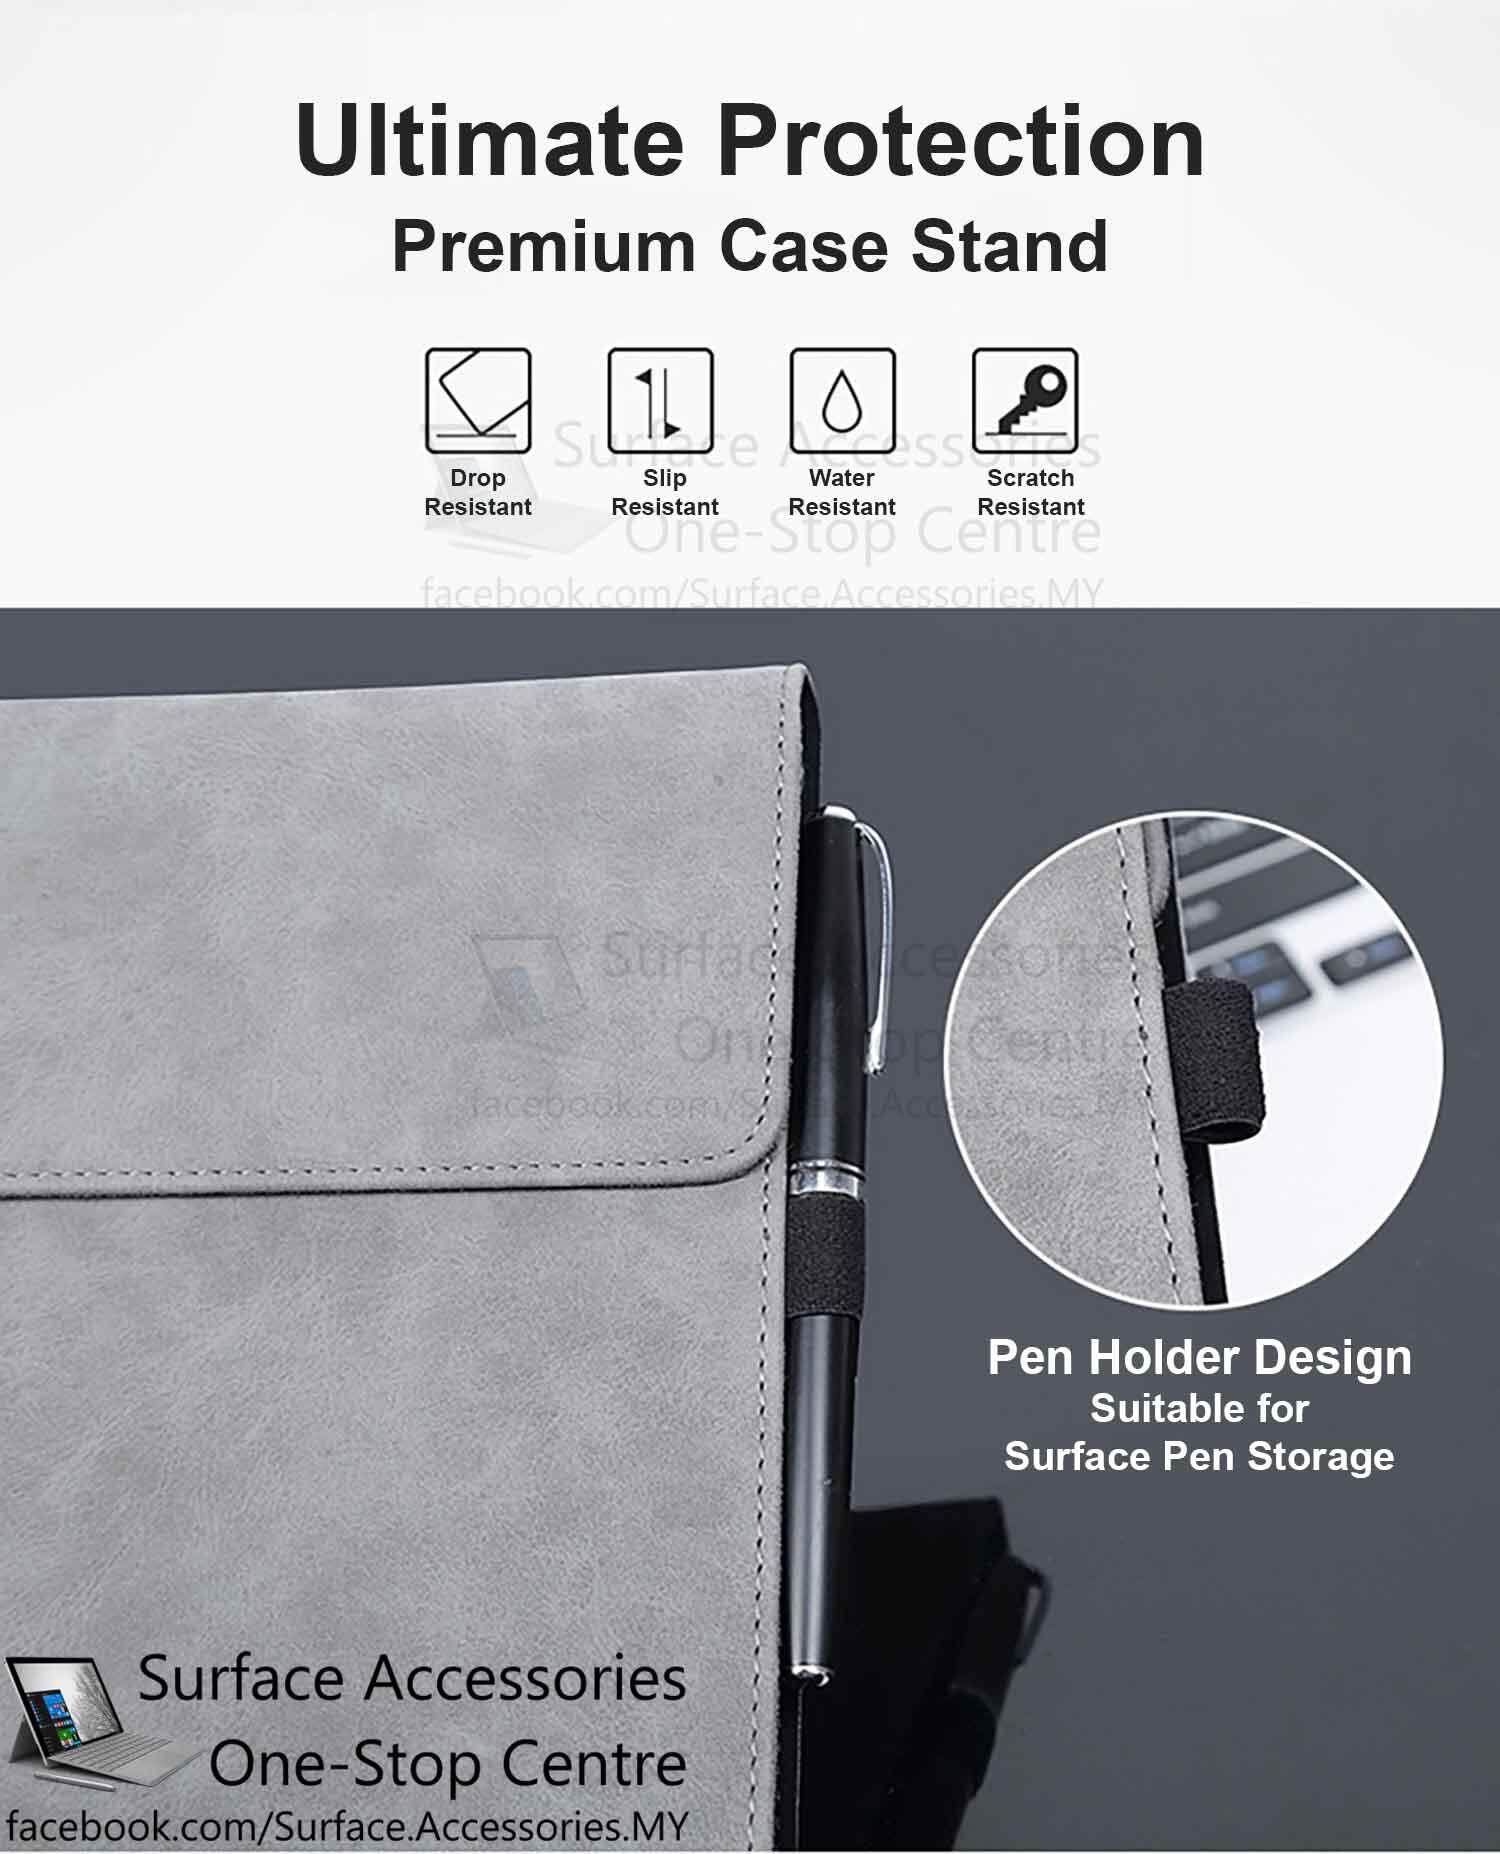 [MALAYSIA]Microsoft Surface Pro 4 Casing Cover Premium Ultimate Case Stand Flip Case Microsoft Surface Pro 4 Cover Case Stand